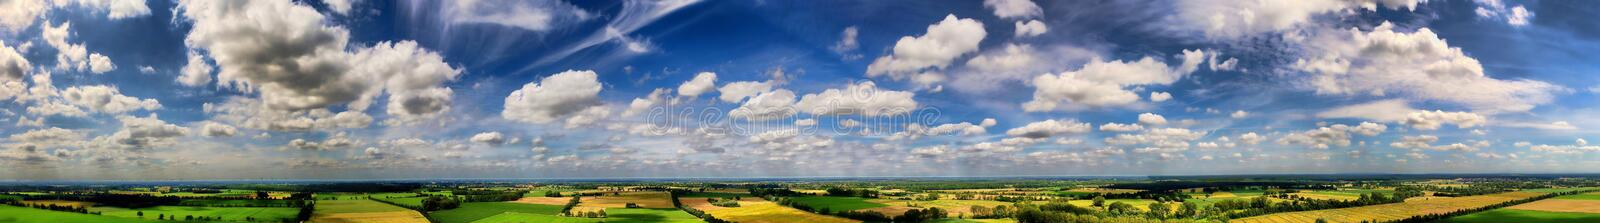 Panorama with clouds of overcast skies about a fields and meadows royalty free stock photos